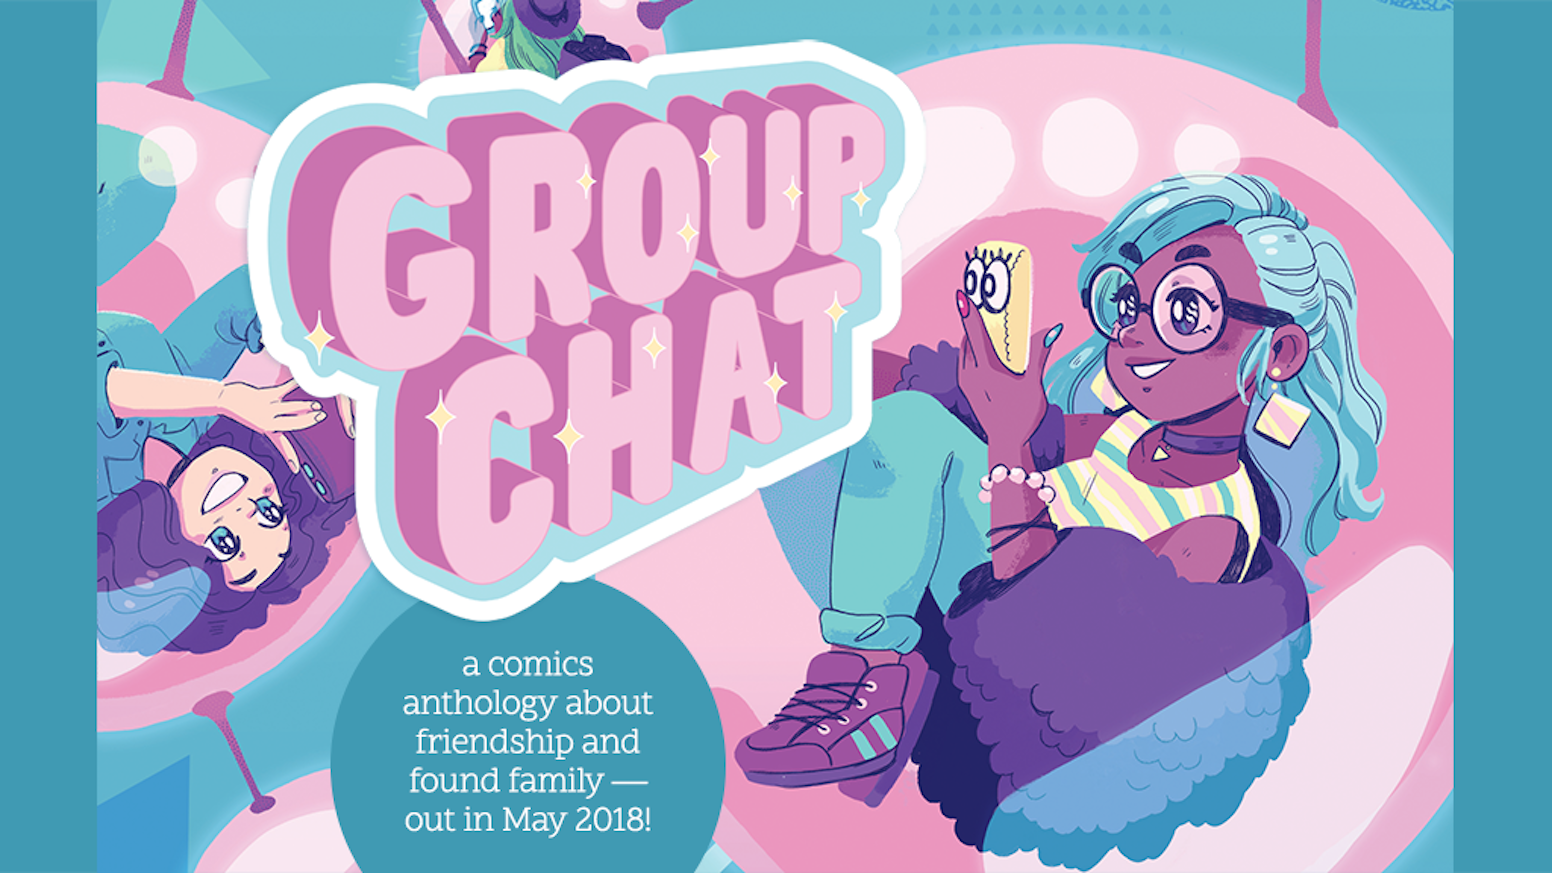 Group Chat is a comics anthology about friendship and found family.